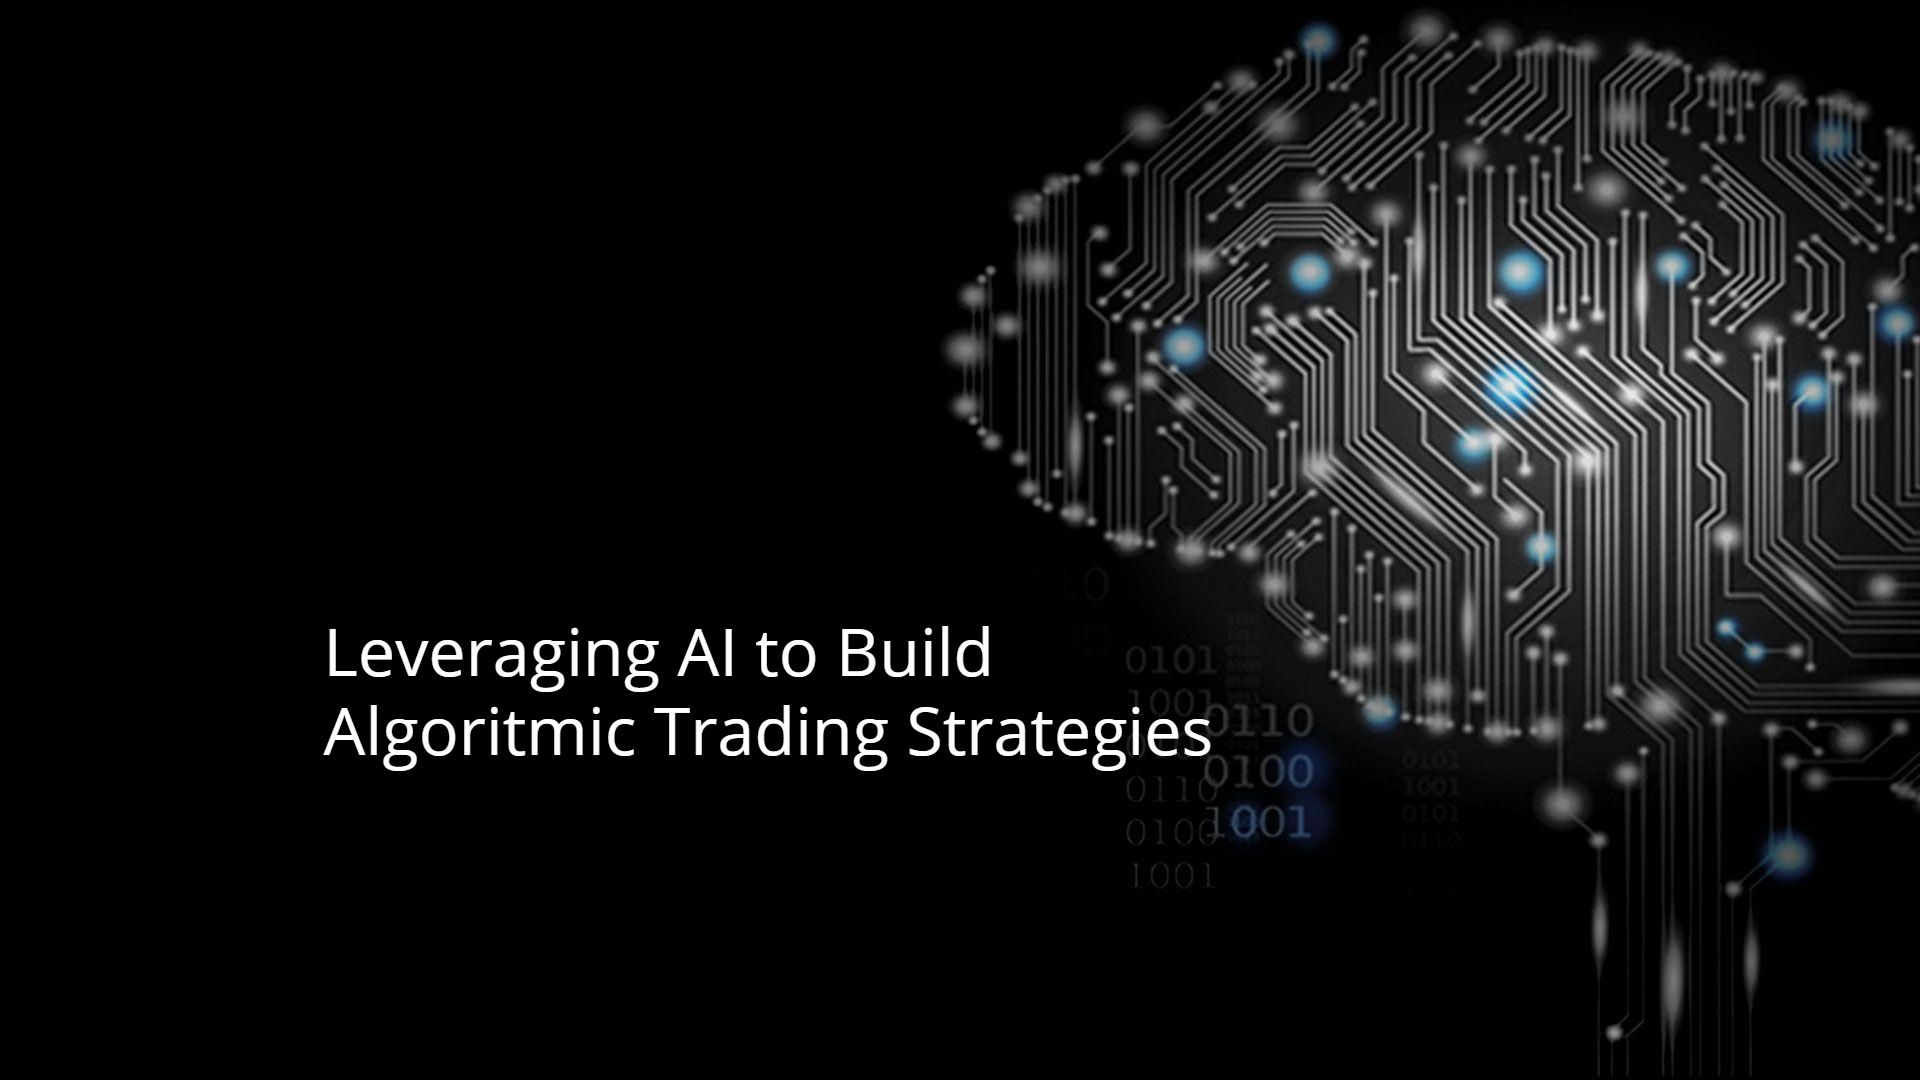 Leveraging AI to Build Algorithmic Trading Strategies